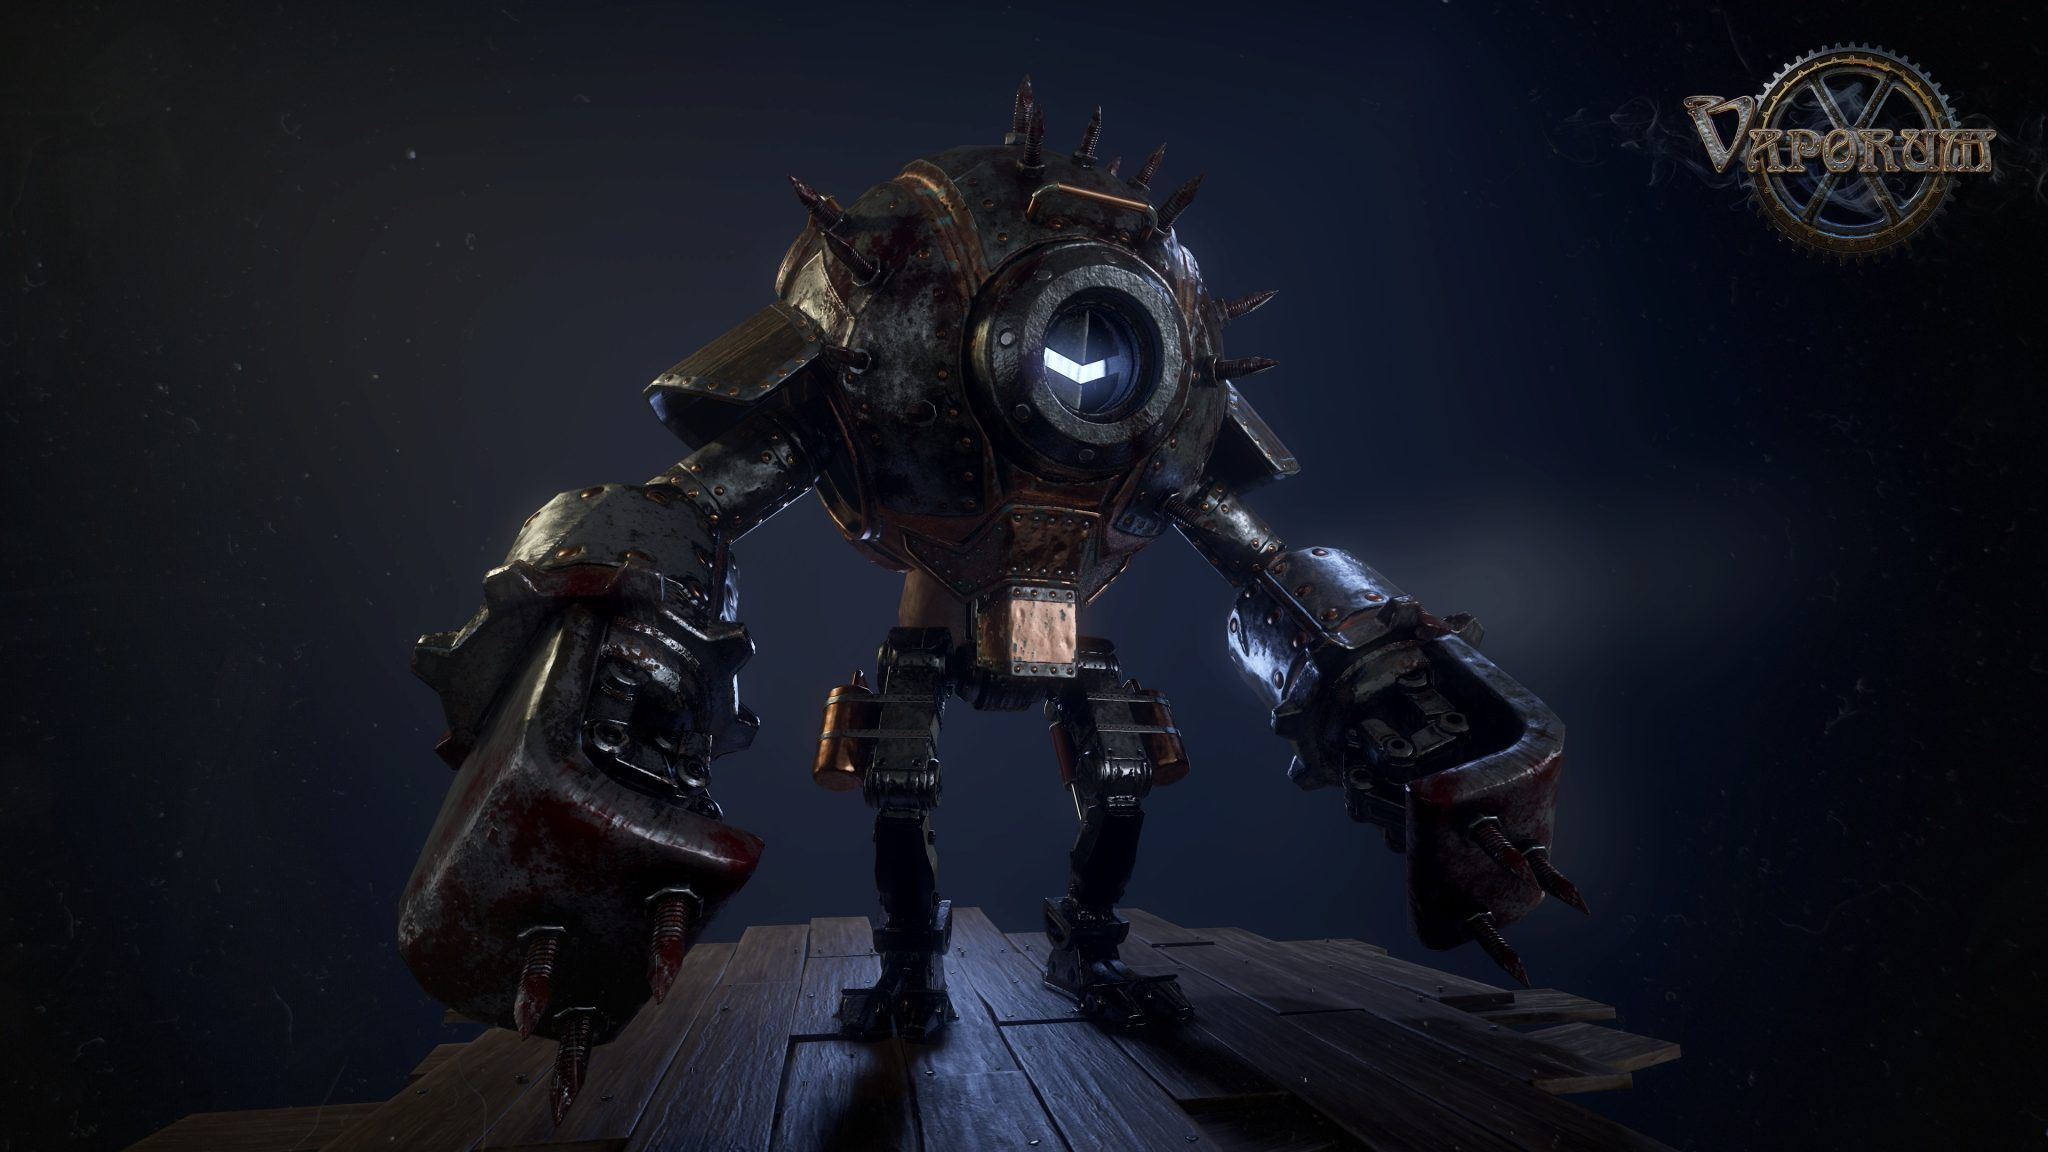 Steampunk Dungeon Crawler Vaporum Is Out Game News Plus